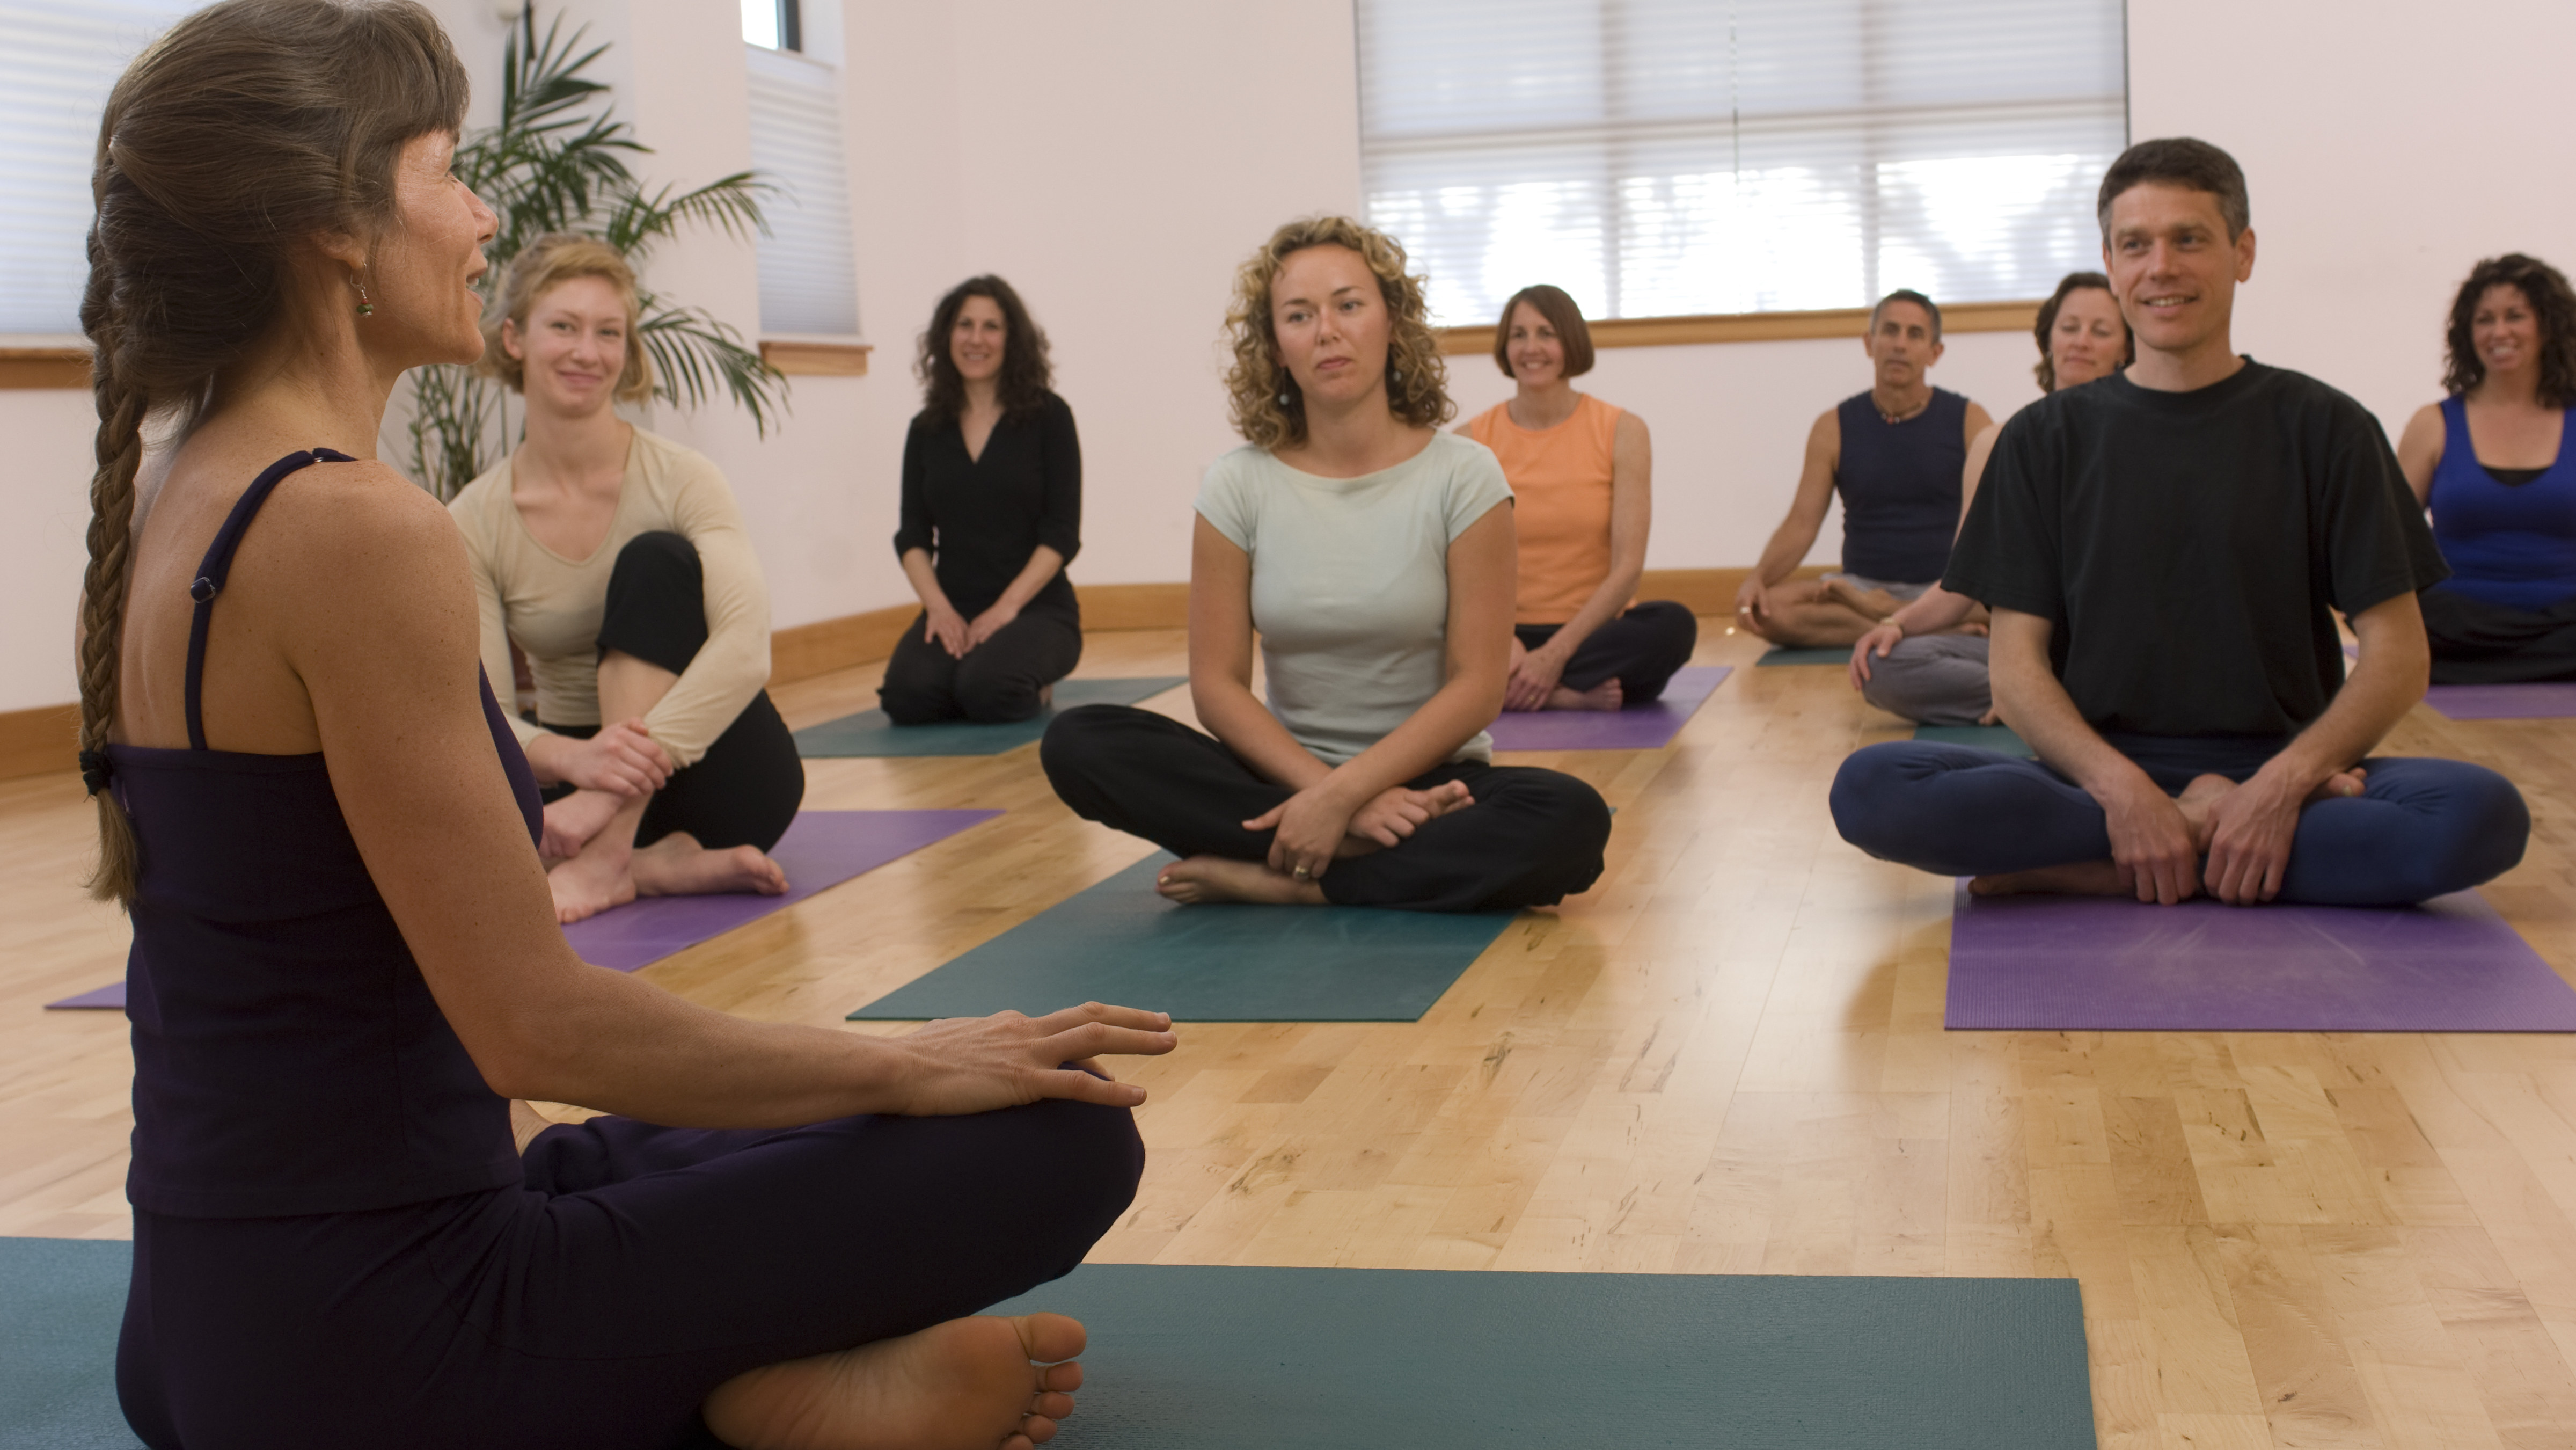 Yoga Instructor, yoga students, listening, observing, yoga and agency